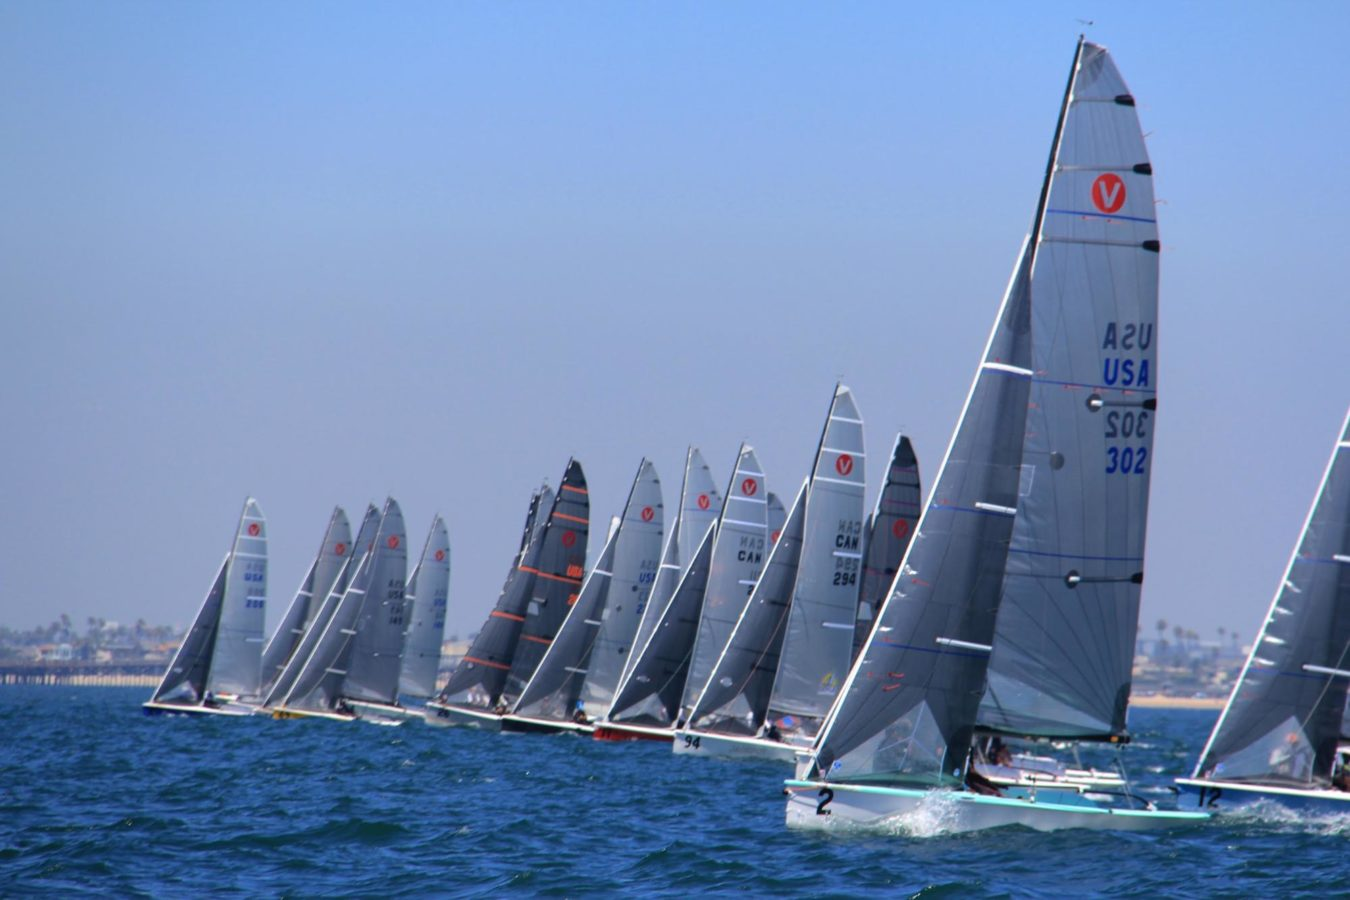 Cajun Underwriting Wins The Viper 640 Worlds | North Sails